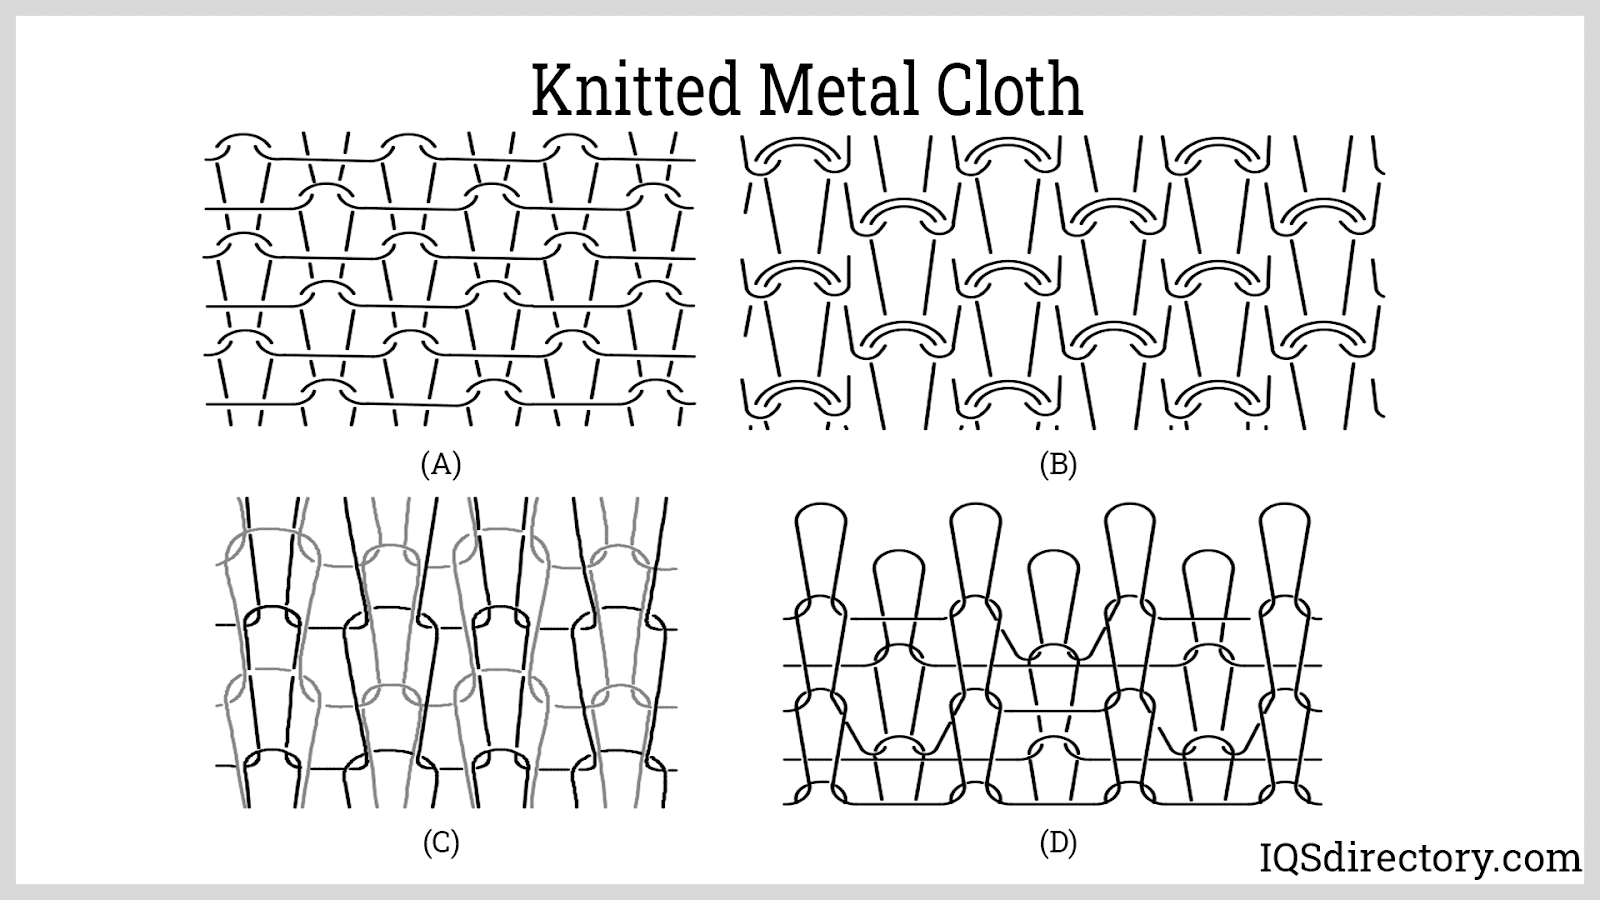 Knitted Metal Cloth